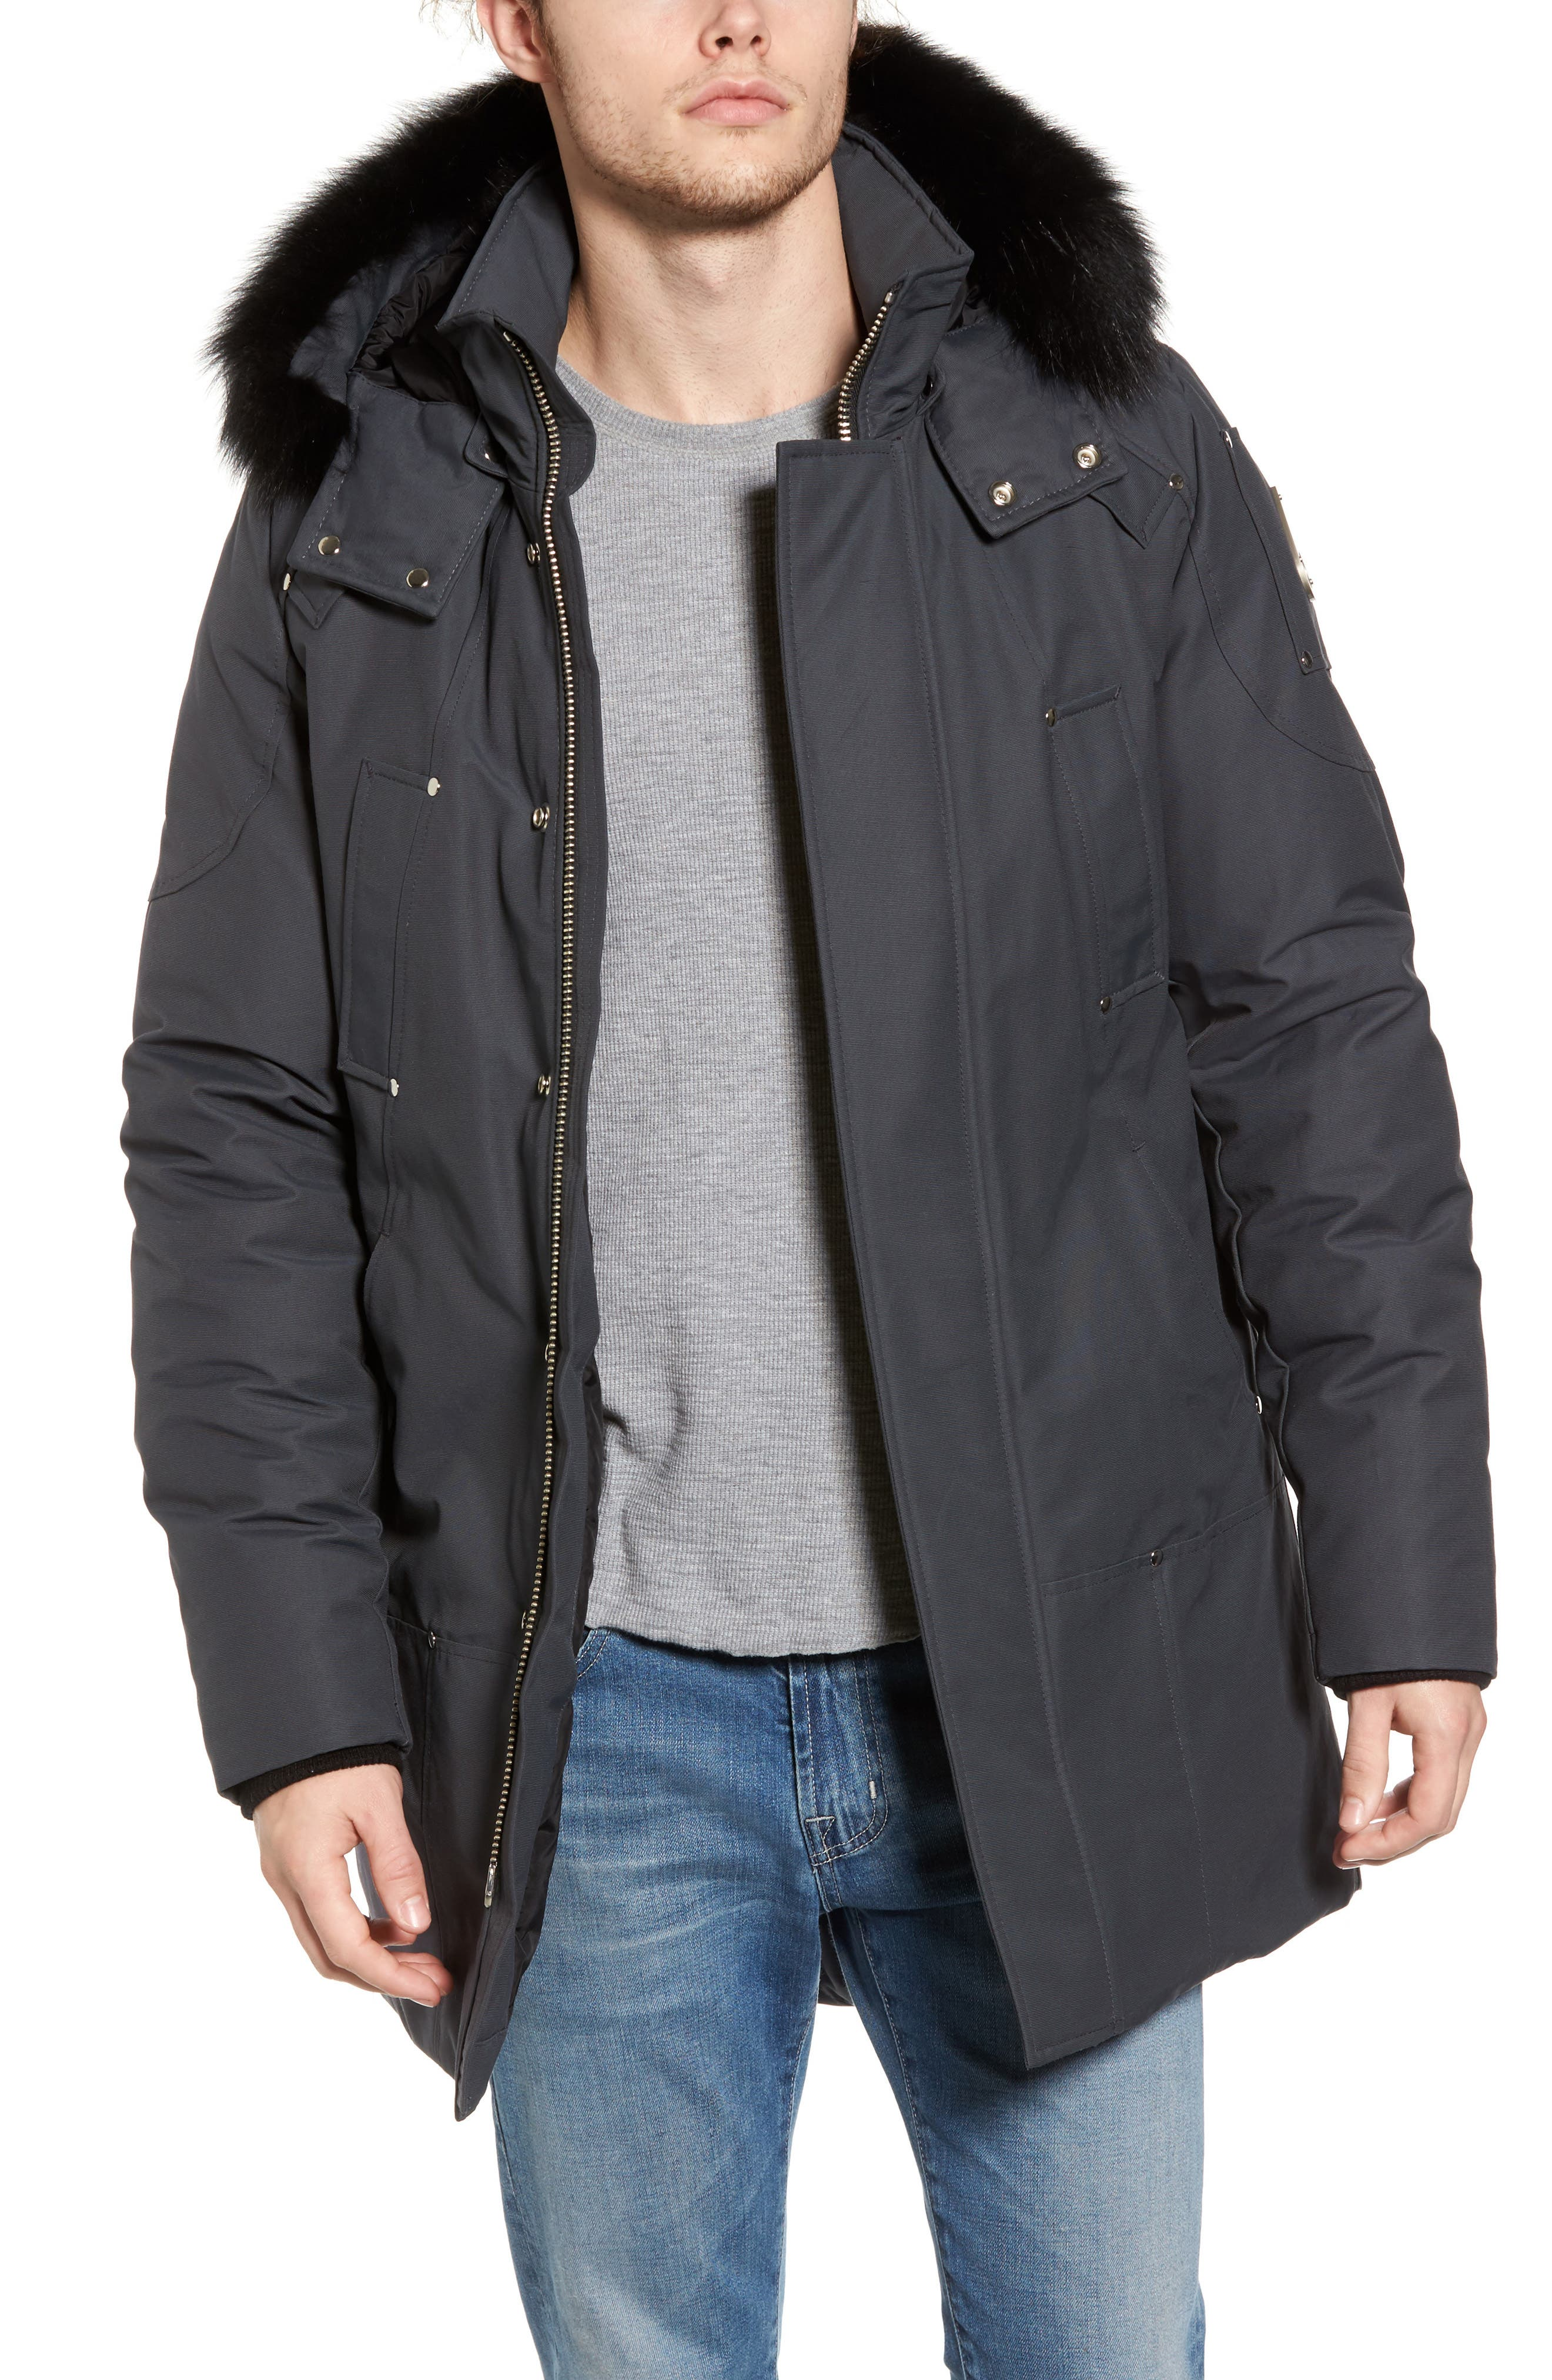 Alternate Image 1 Selected - Moose Knuckles Stirling Water Repellent Down Parka with Genuine Fox Fur Trim